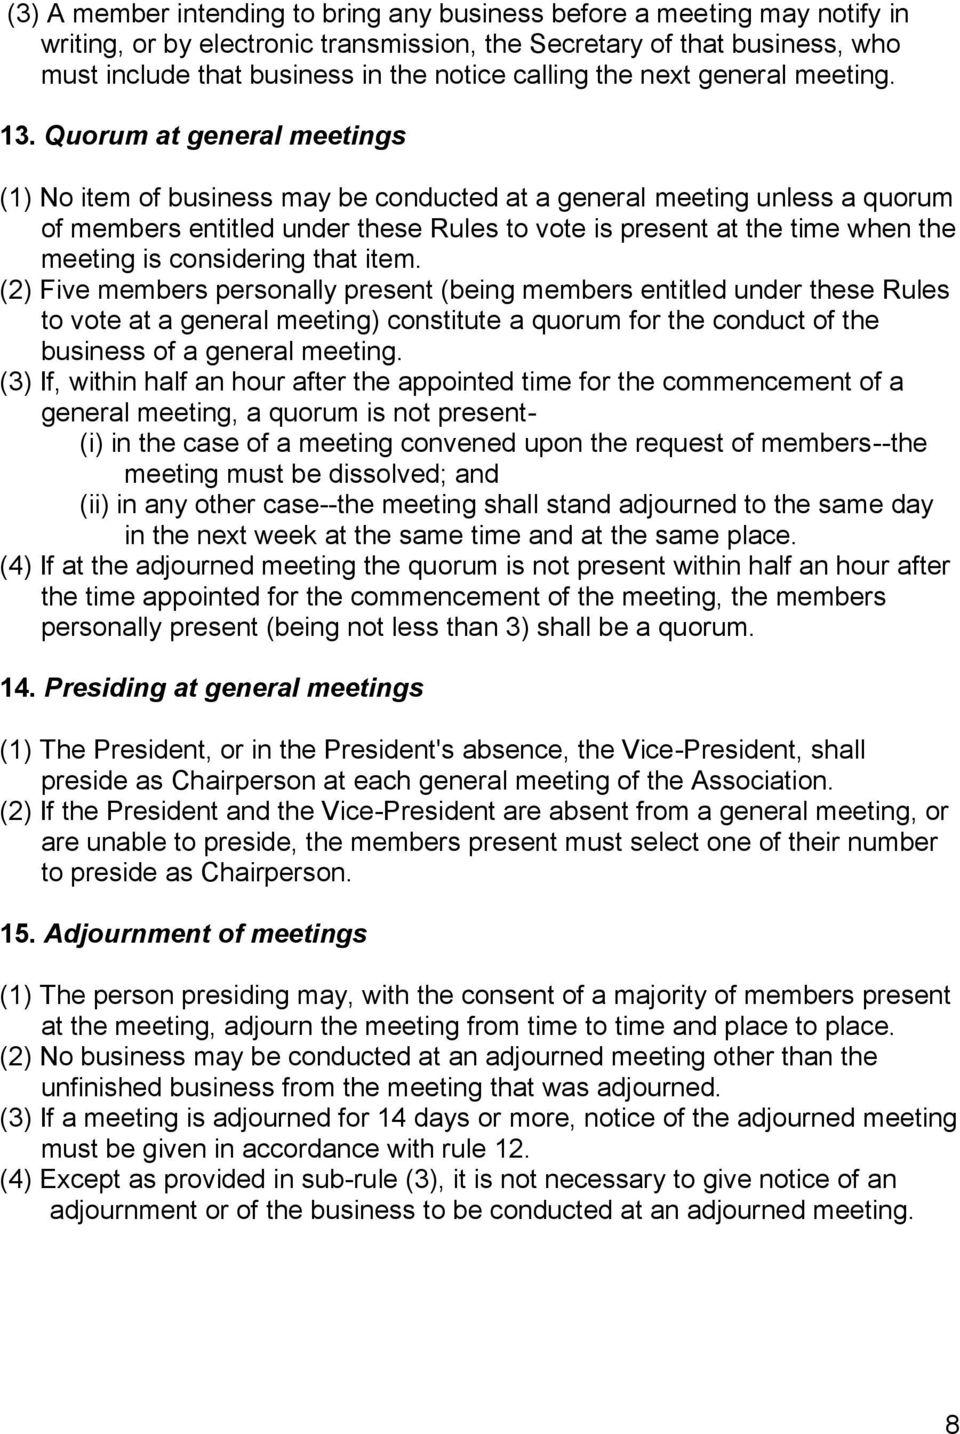 Quorum at general meetings (1) No item of business may be conducted at a general meeting unless a quorum of members entitled under these Rules to vote is present at the time when the meeting is